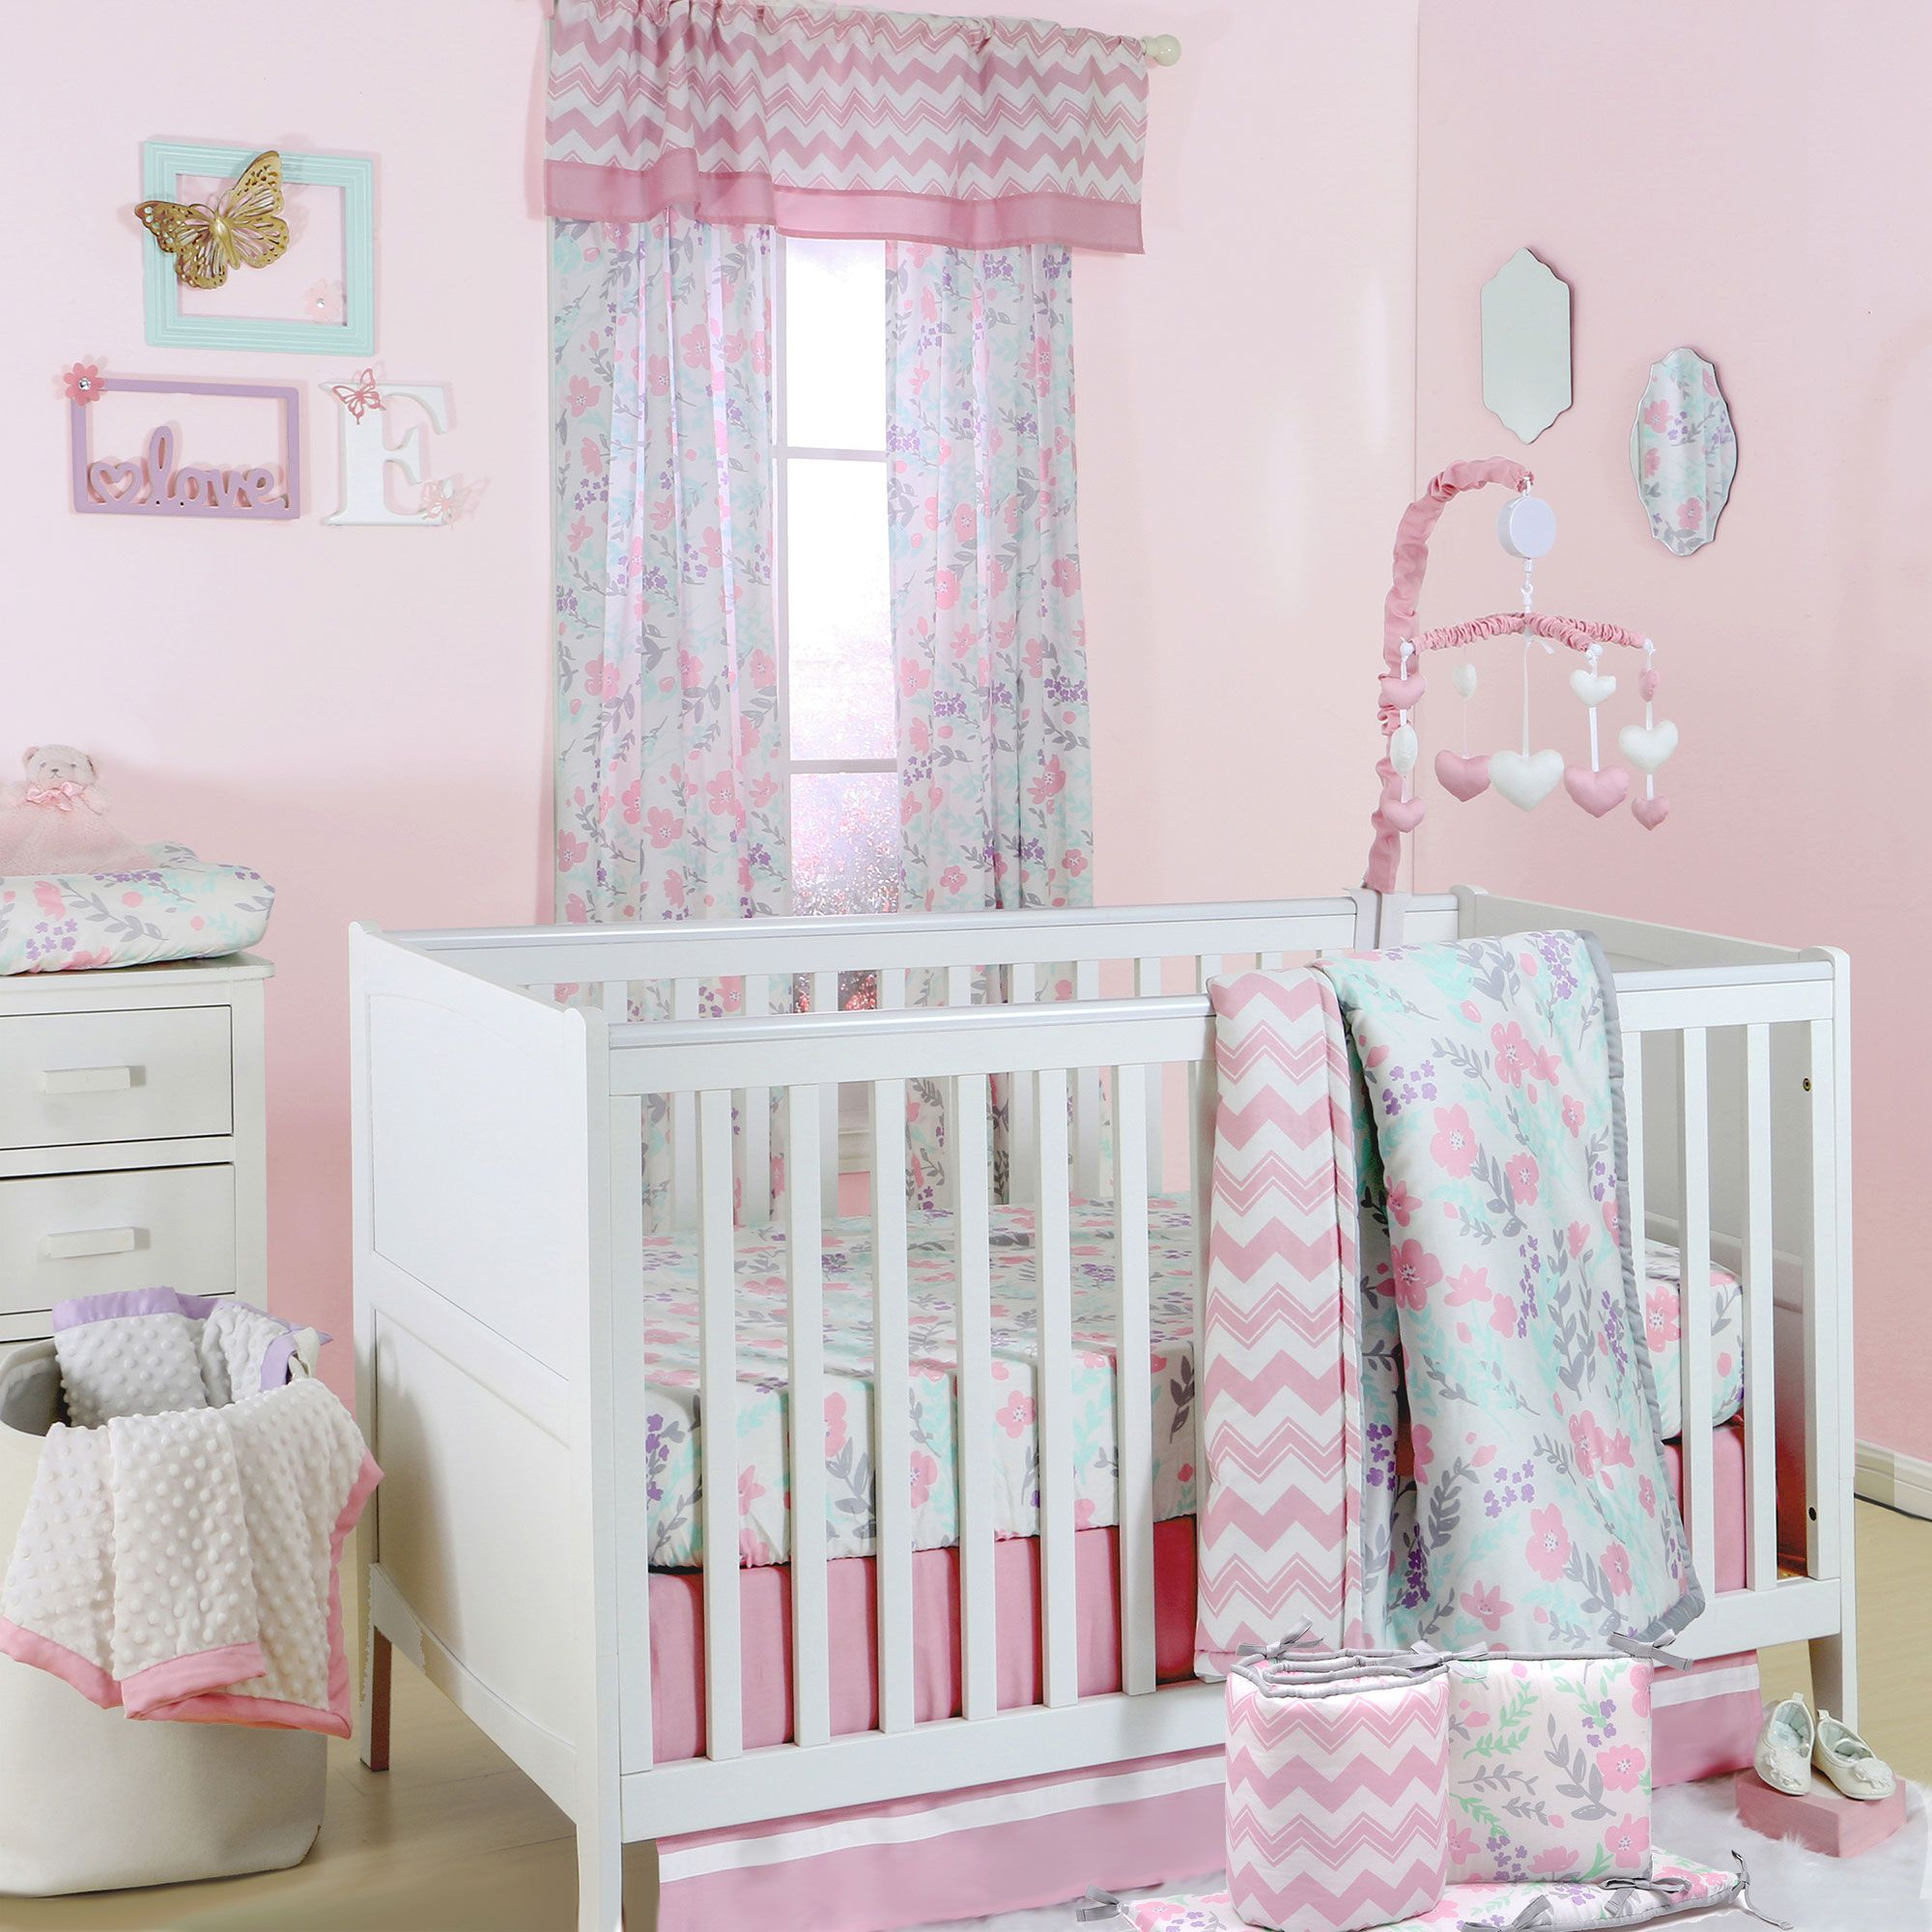 floral set of pictures curtains lovely walls cribs baby jeseniacoant crib pink nursery bedding girl